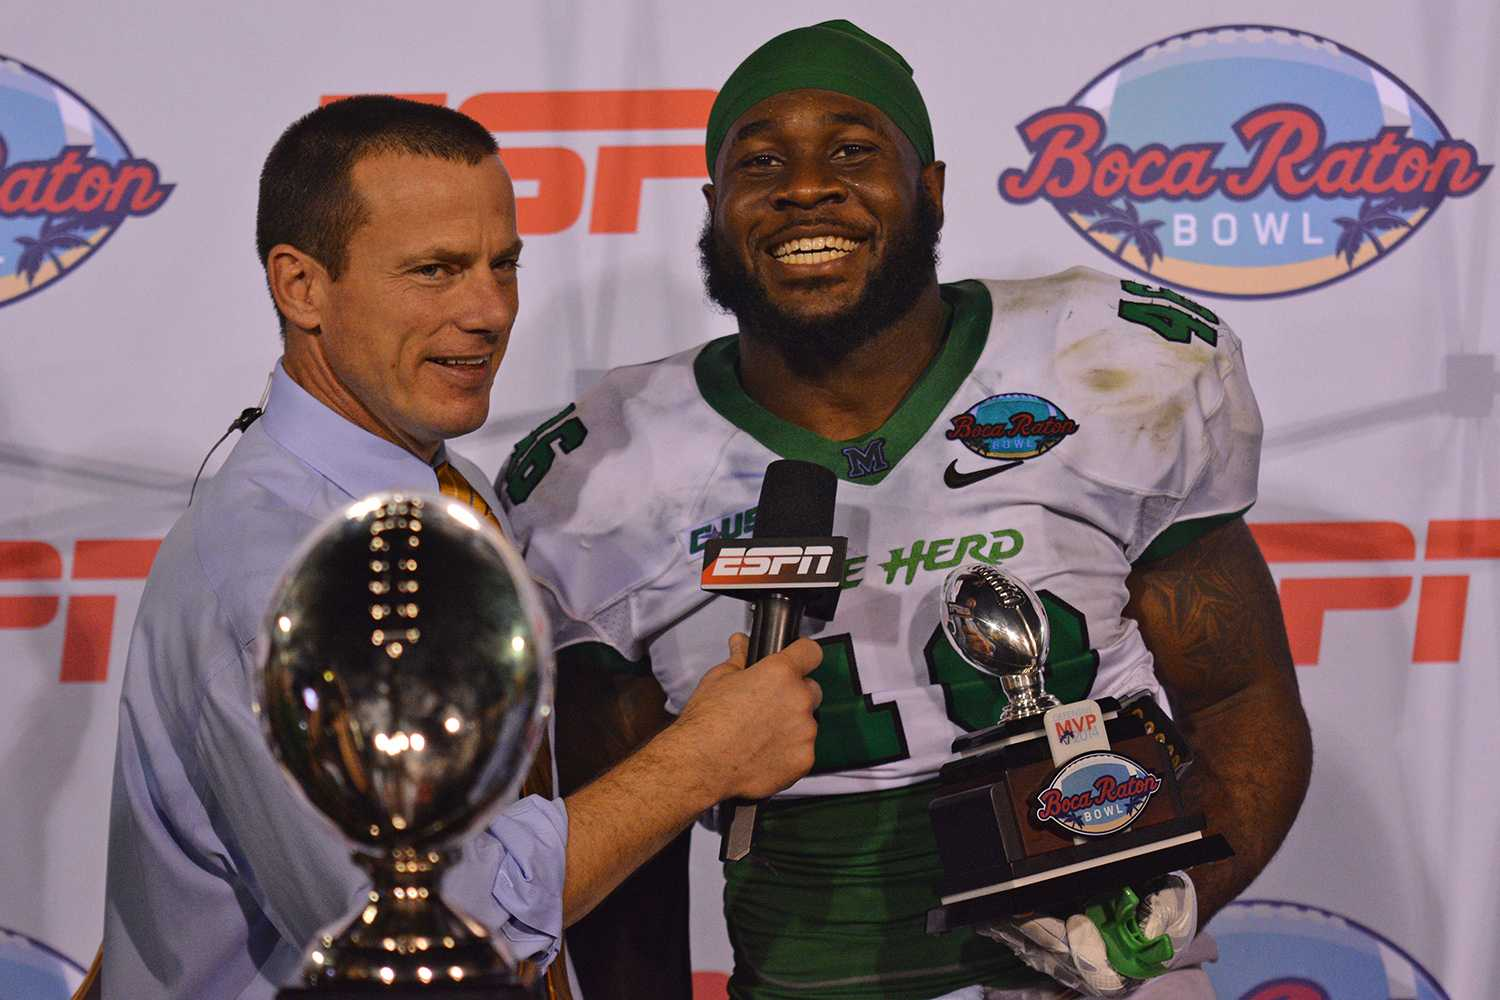 After totaling 1.5 sacks and eight tackles, Marshall linebacker Jermaine Holmes won the Boca Raton Bowl defensive MVP award. Holmes was selected to the Conference USA second team all-conference team.